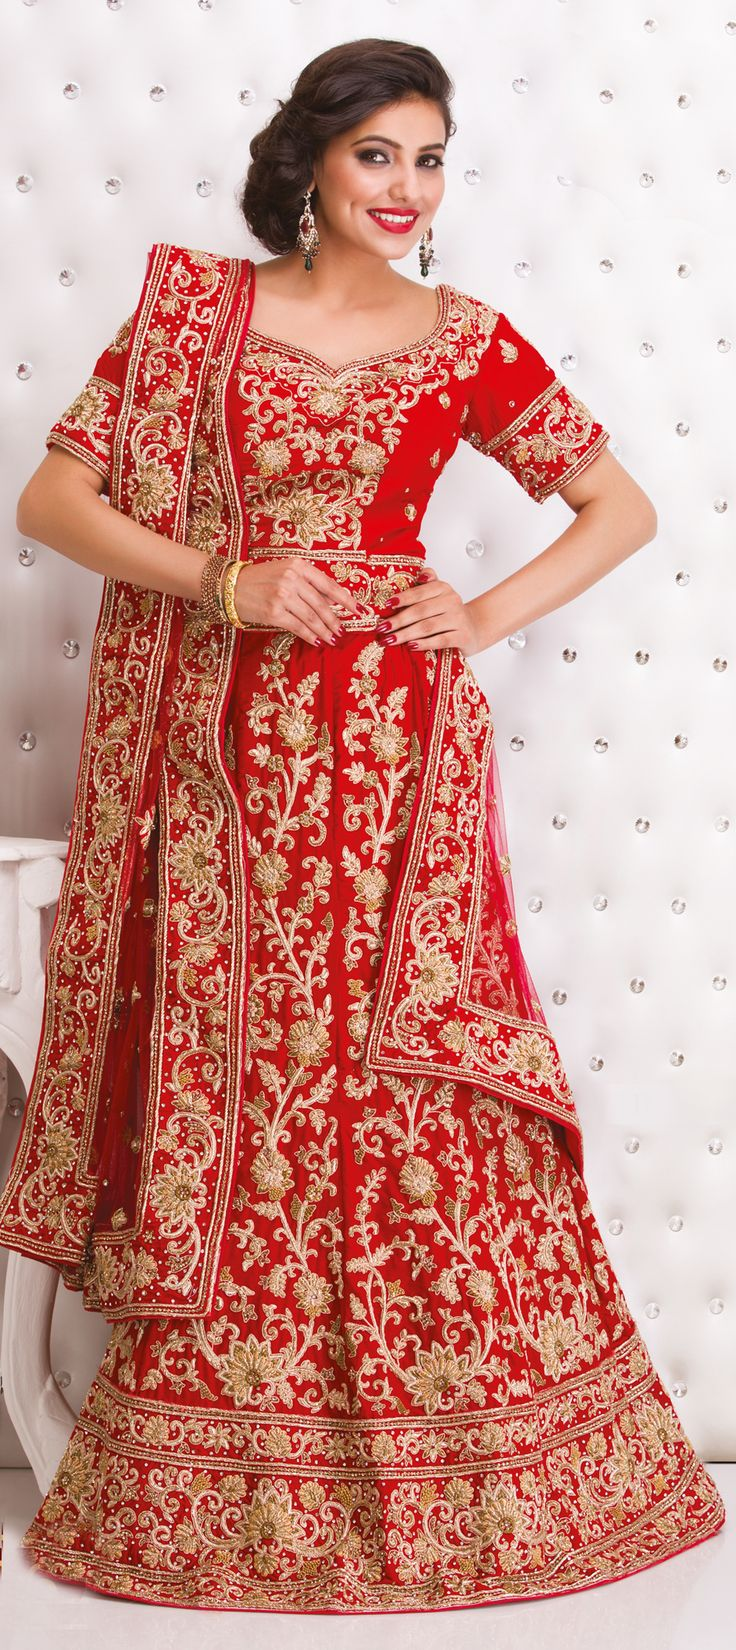 164122: Red and Maroon color family Bridal Lehenga .